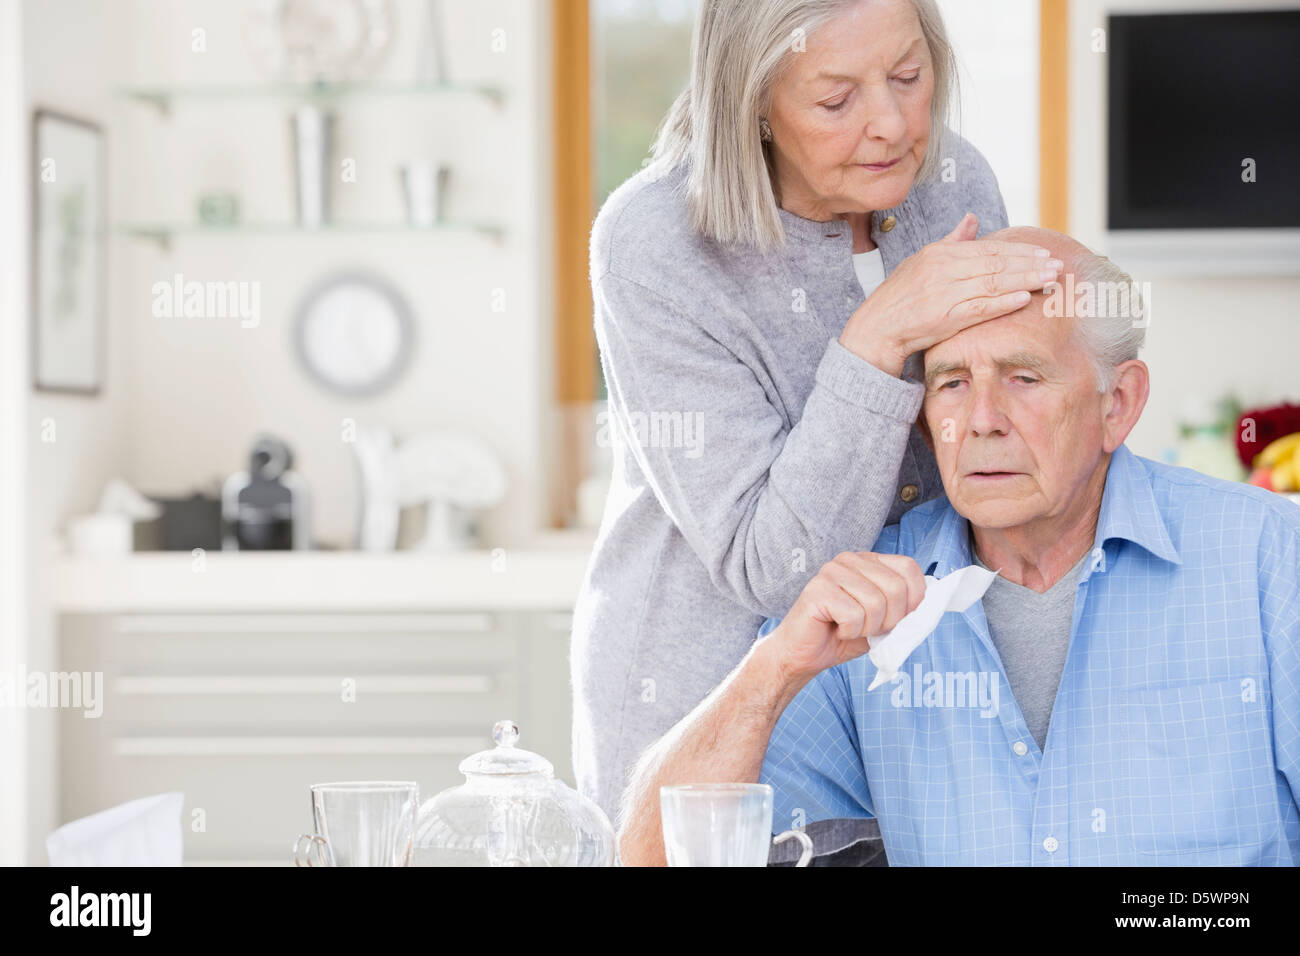 Older woman feeling sick husband's forehead - Stock Image